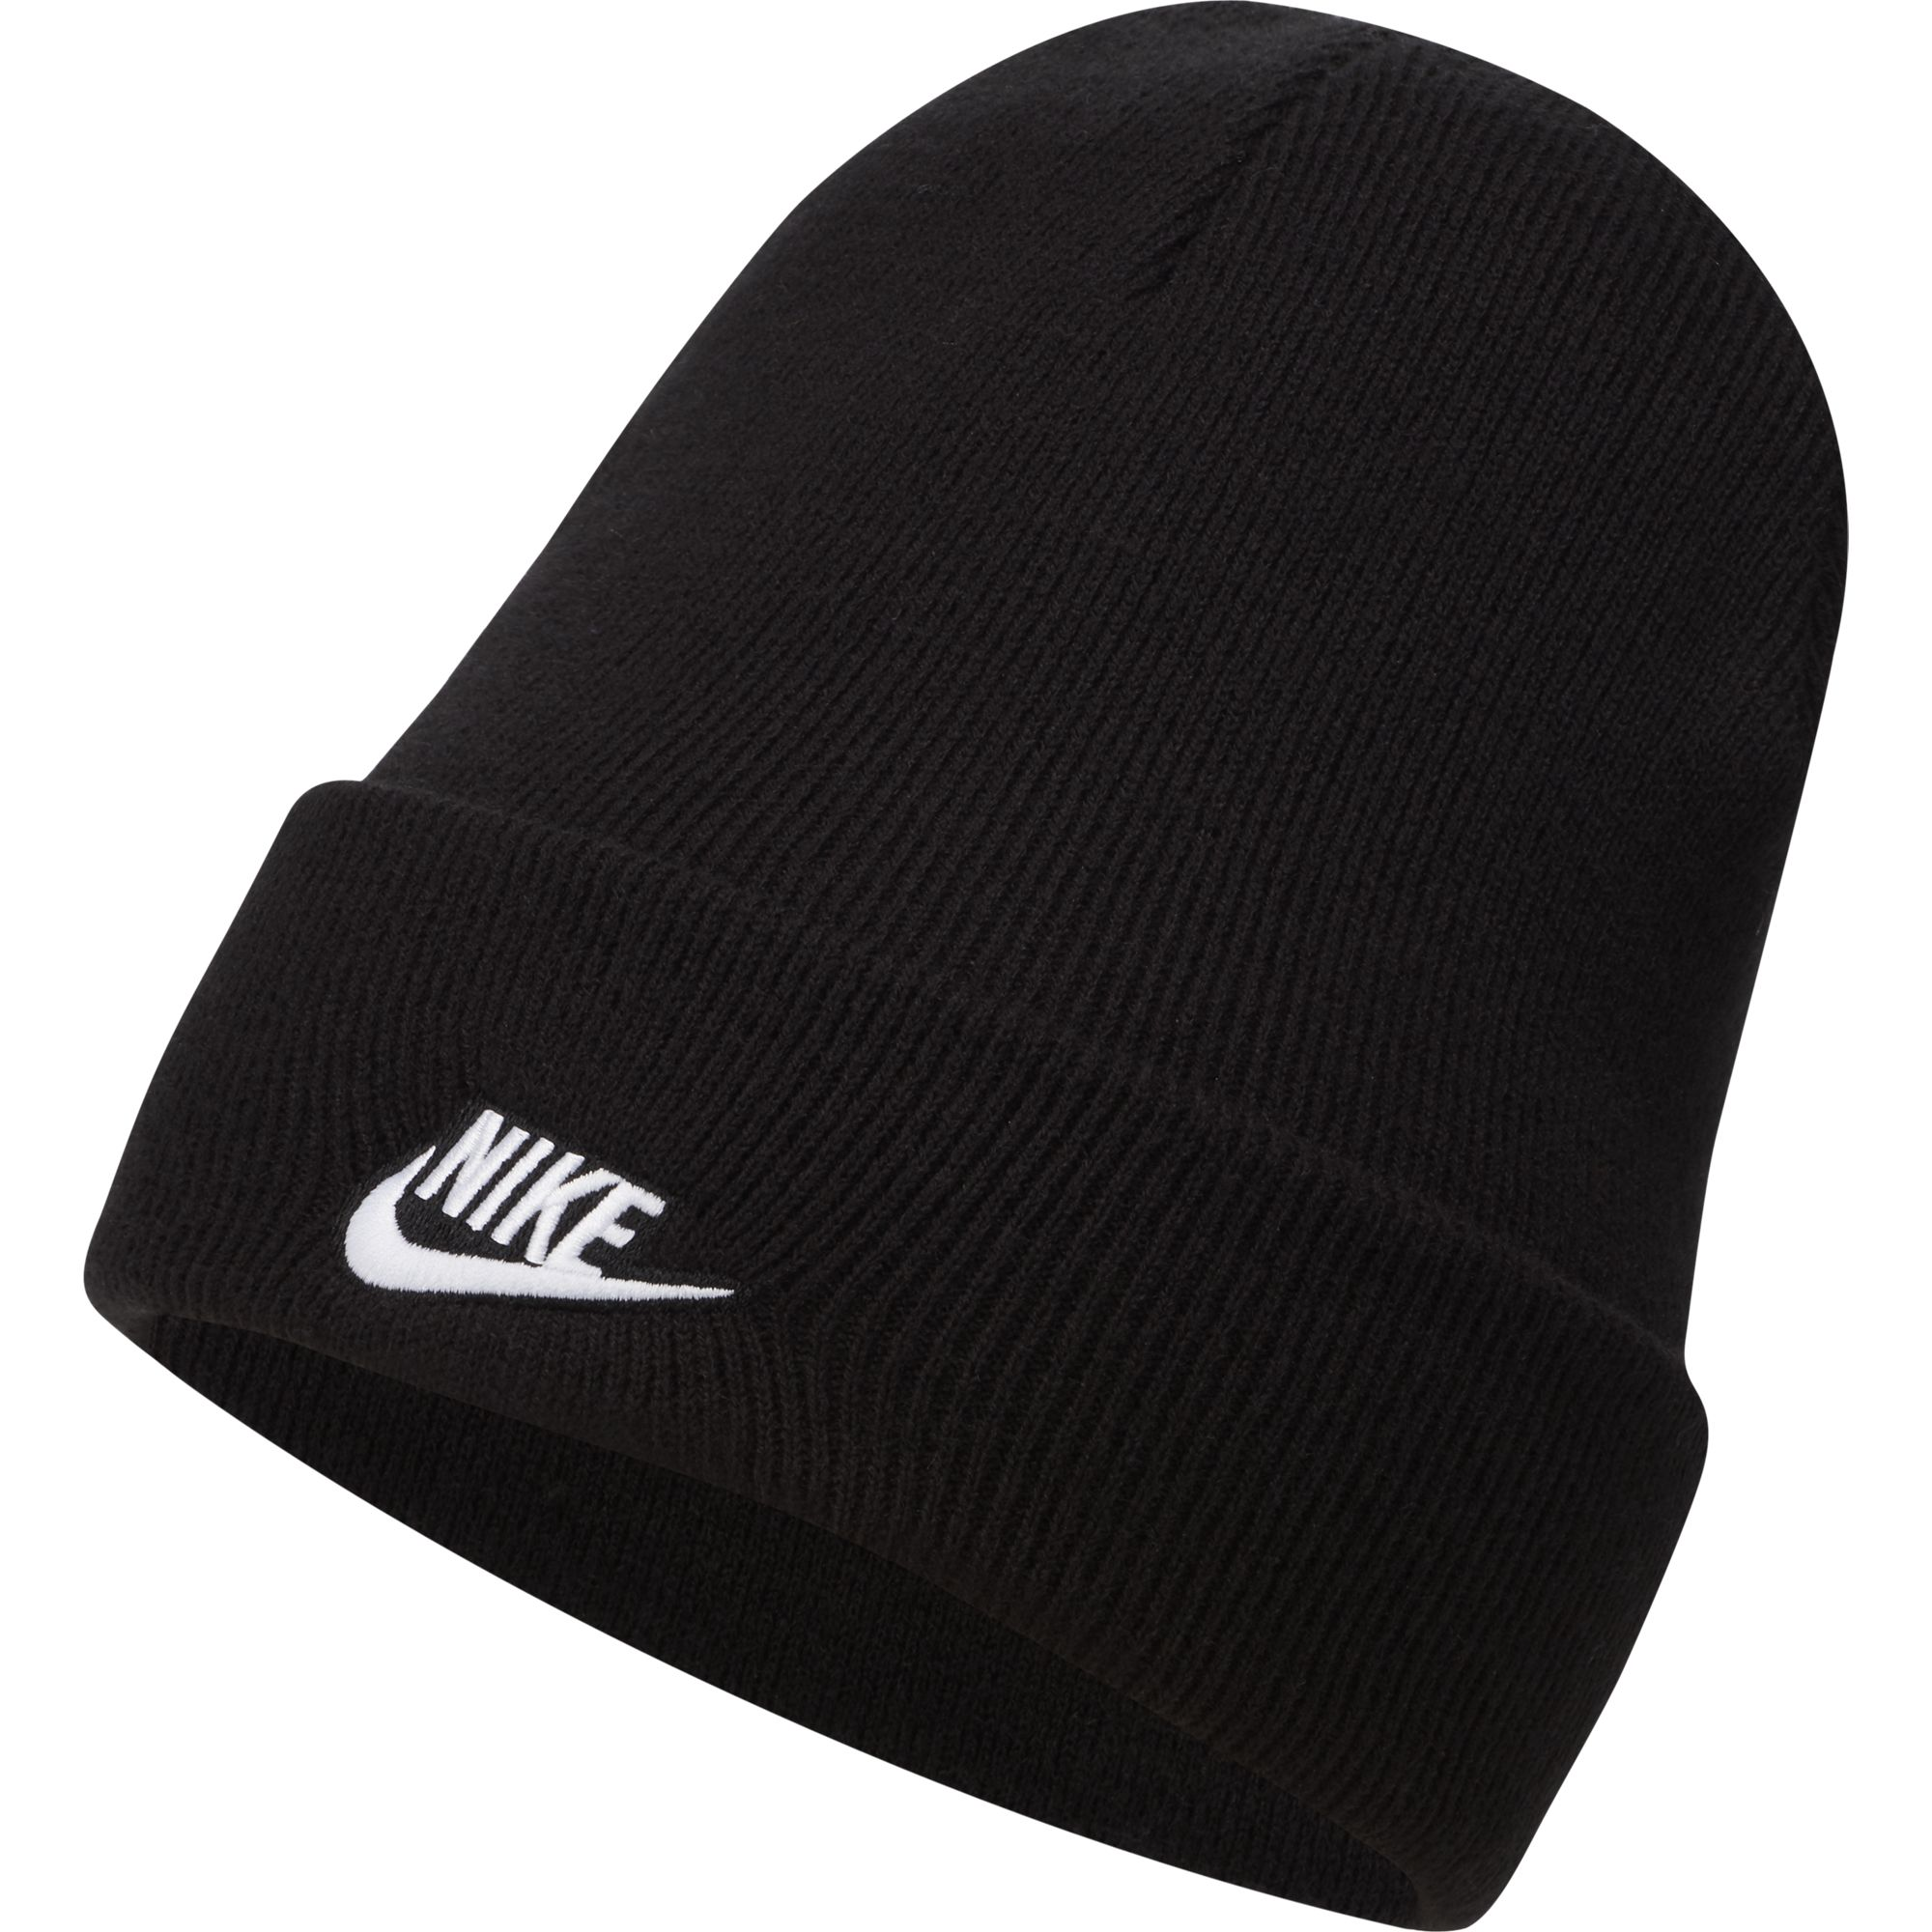 Men's Cuffed Beanie Utility Ski Hat, Black, swatch